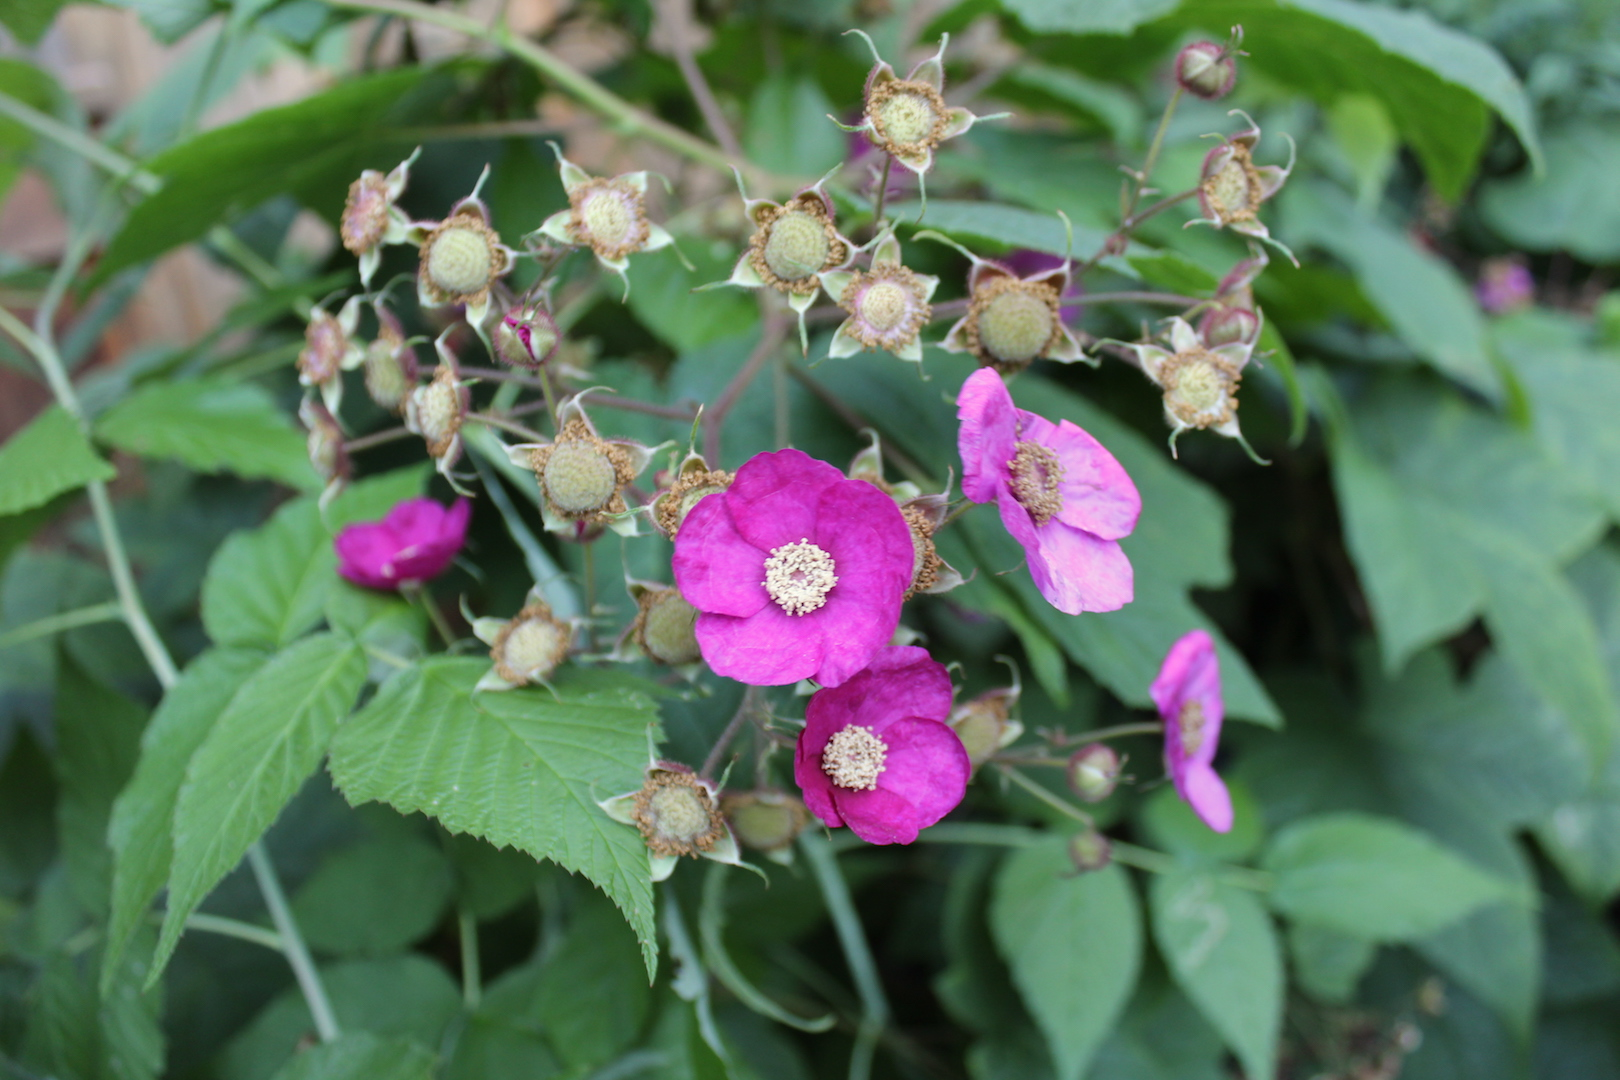 Thimbleberry flowers and fruit